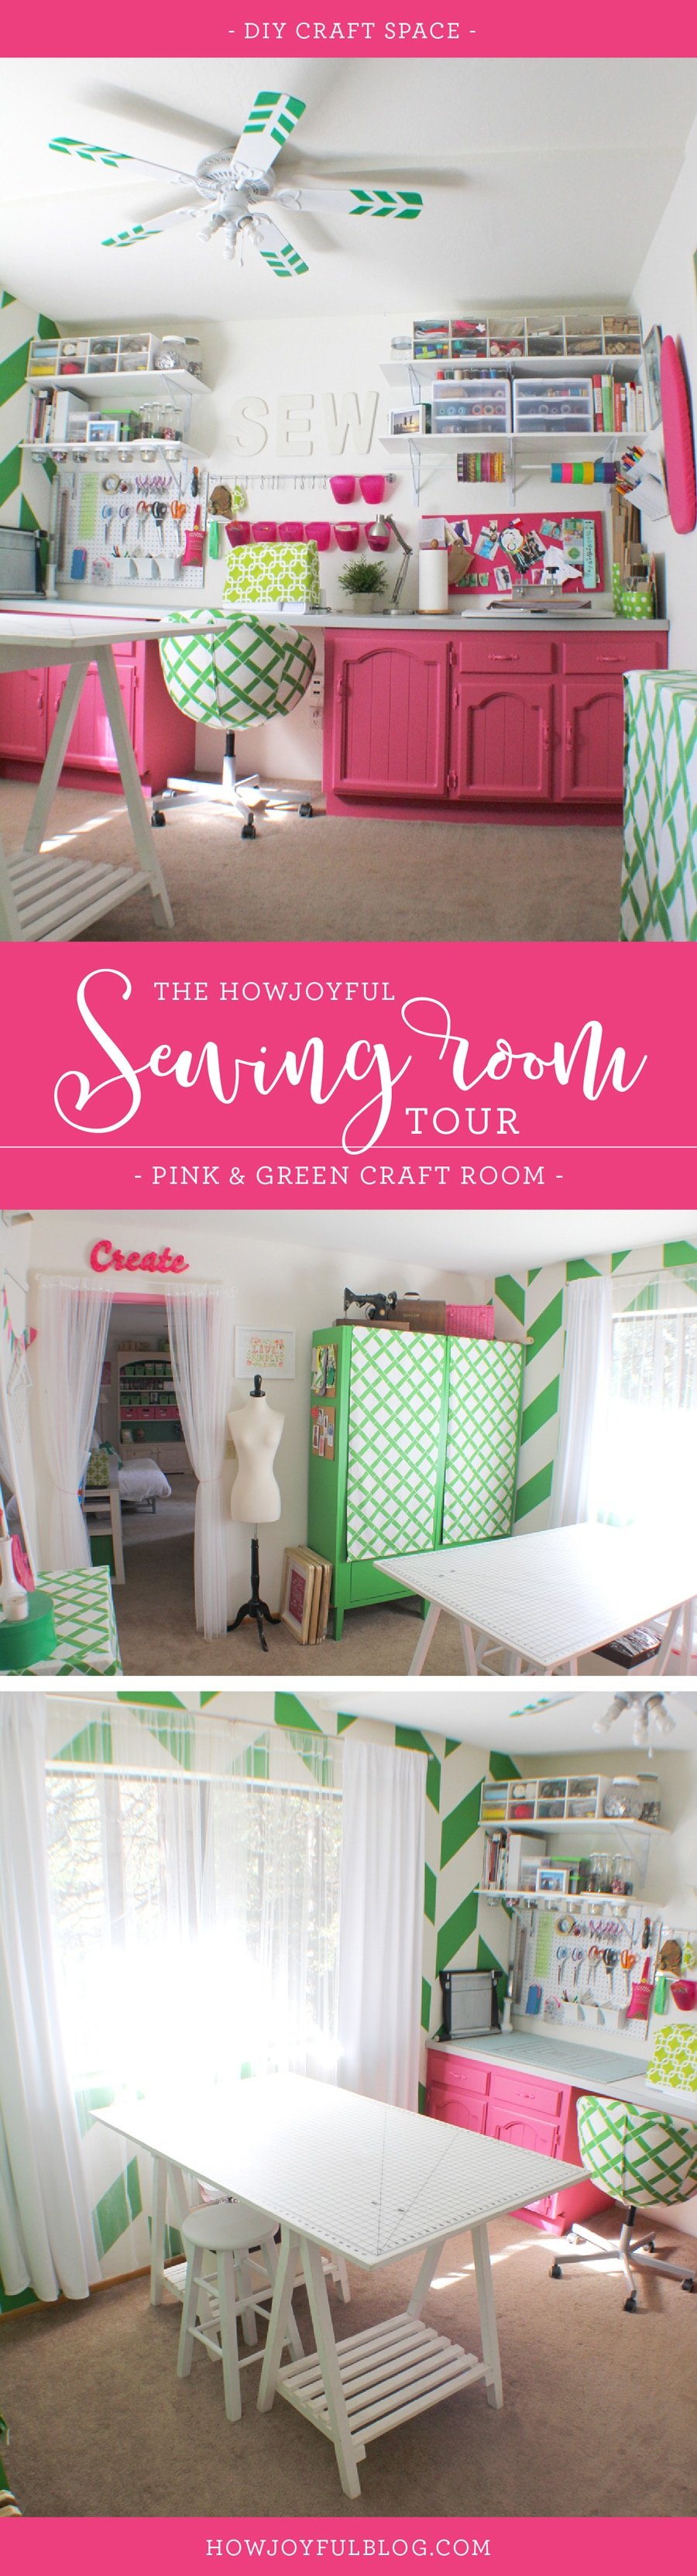 The HowJoyful sewing room tour - Pink and green craft space